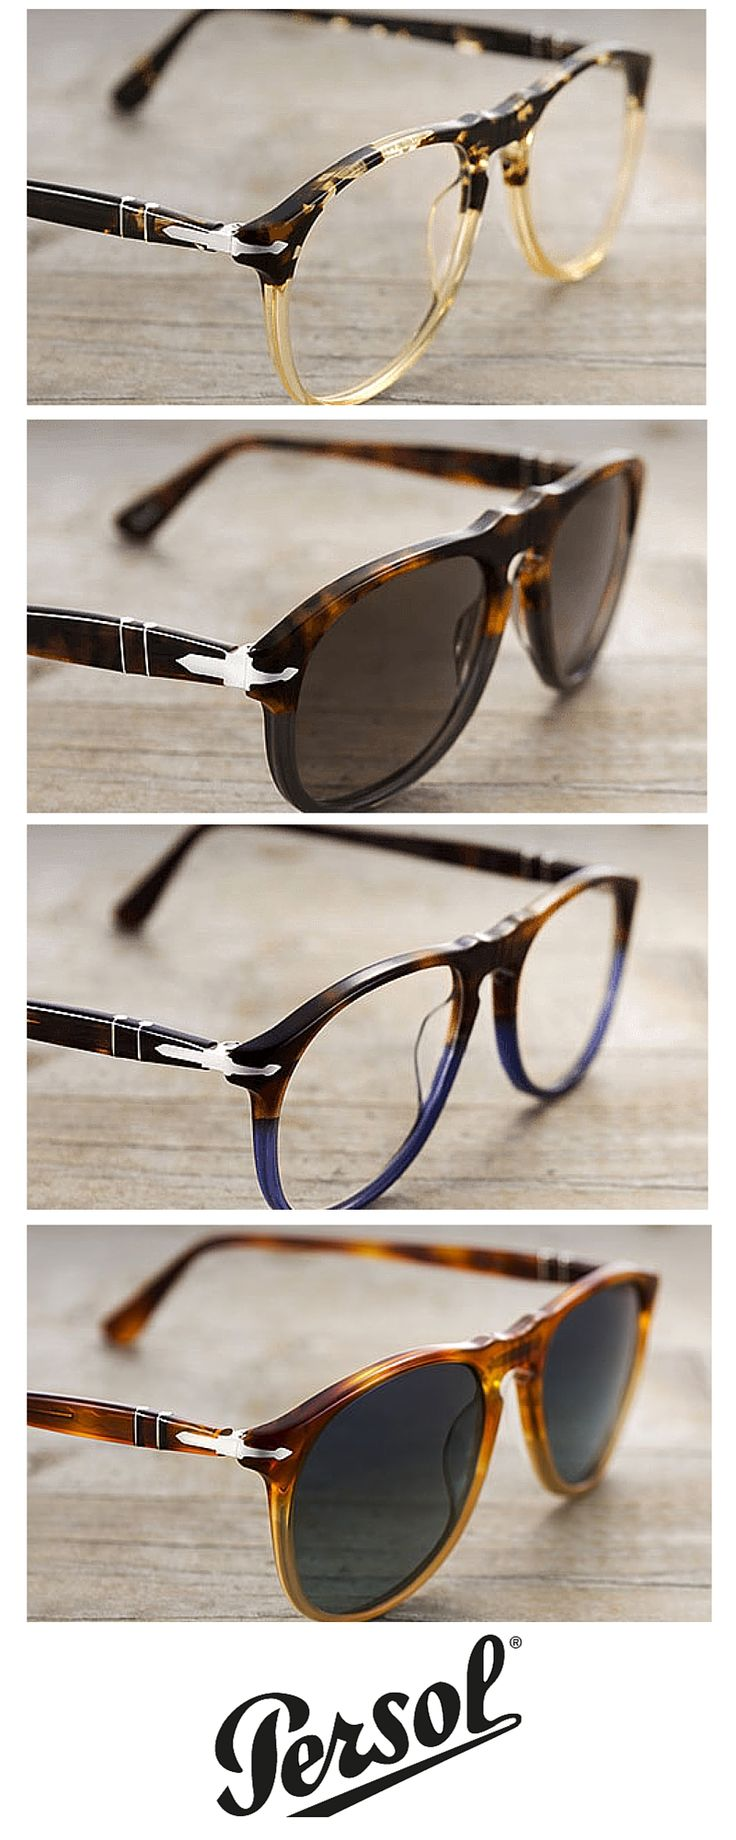 Discover Persol Vintage Celebration http://blog.smartbuyglasses.co.uk/brand-spotlight/introducing-persol-vintage-celebration.html?utm_source=twitter&utm_medium=social&utm_campaign=TW%20post